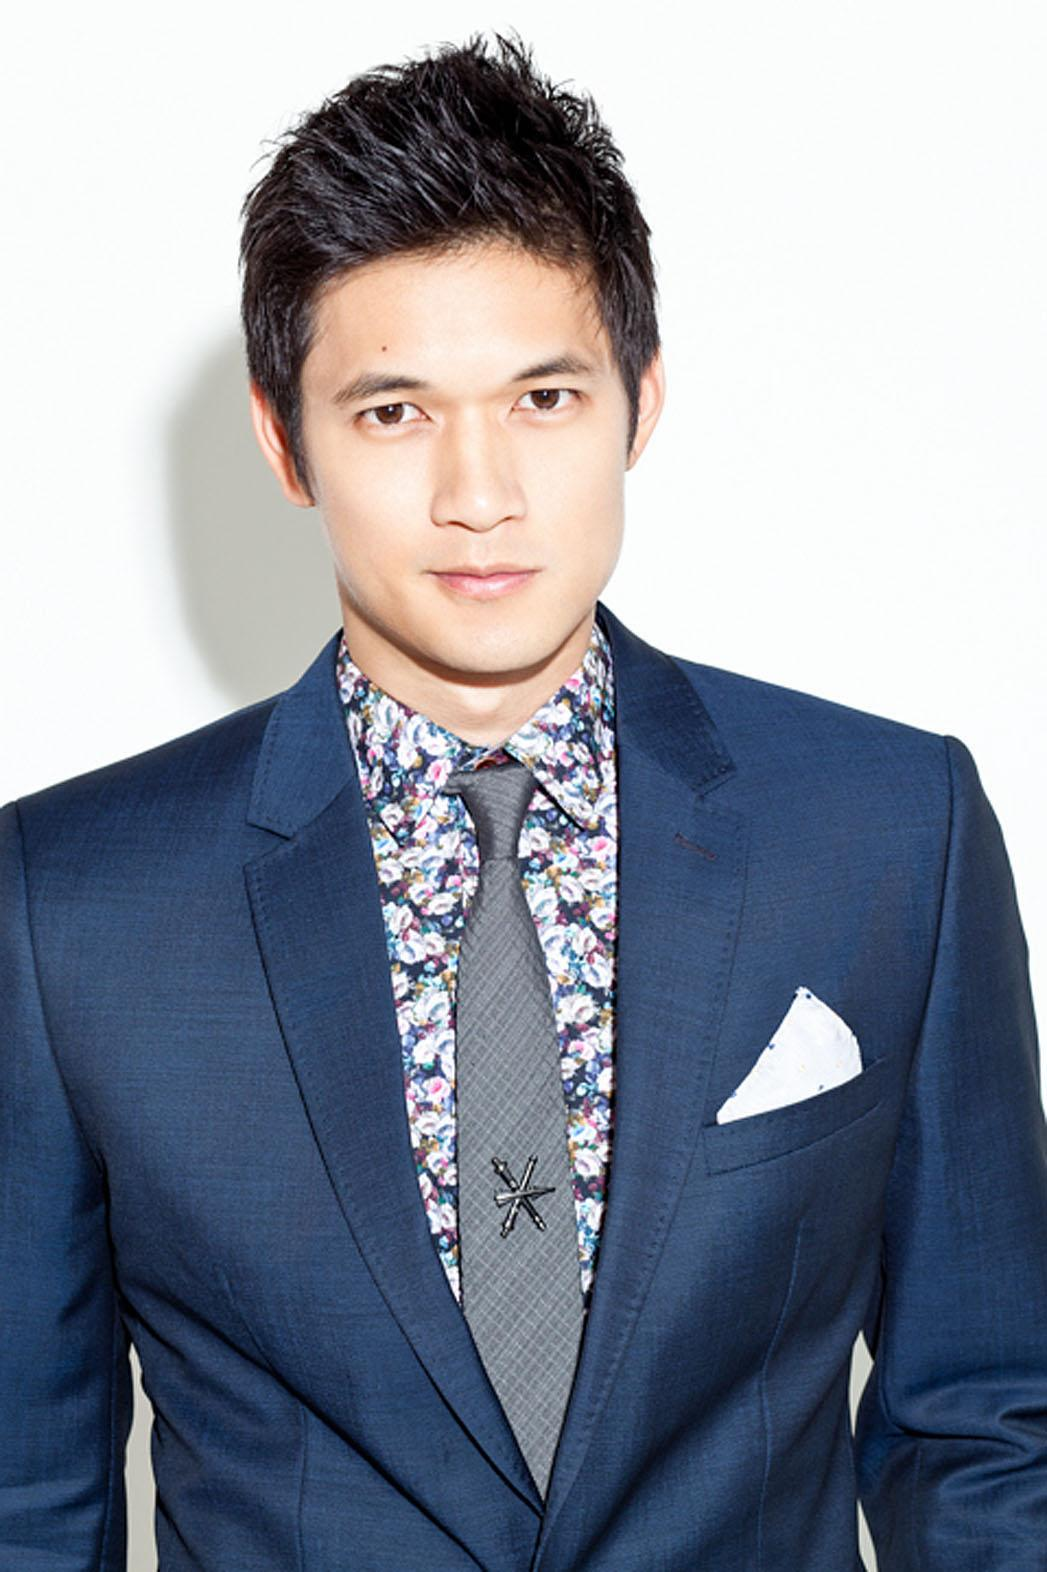 'Glee's' Harry Shum Jr. to Star in YouTube Red Rom-Com 'Single by 30'